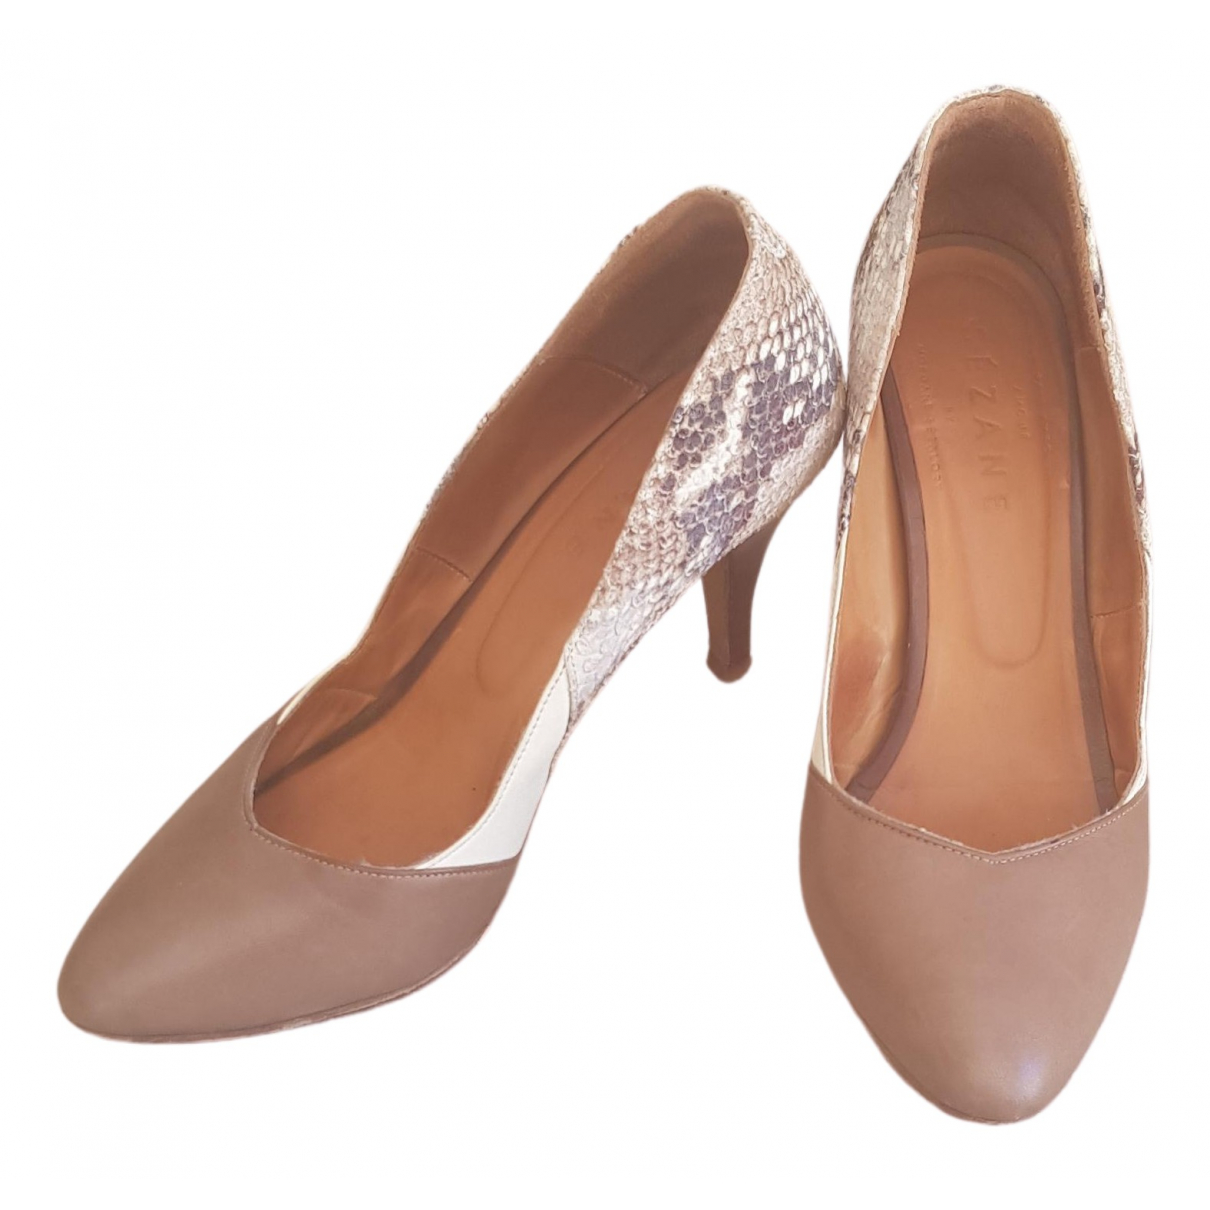 Sezane \N Pumps in  Beige Leder